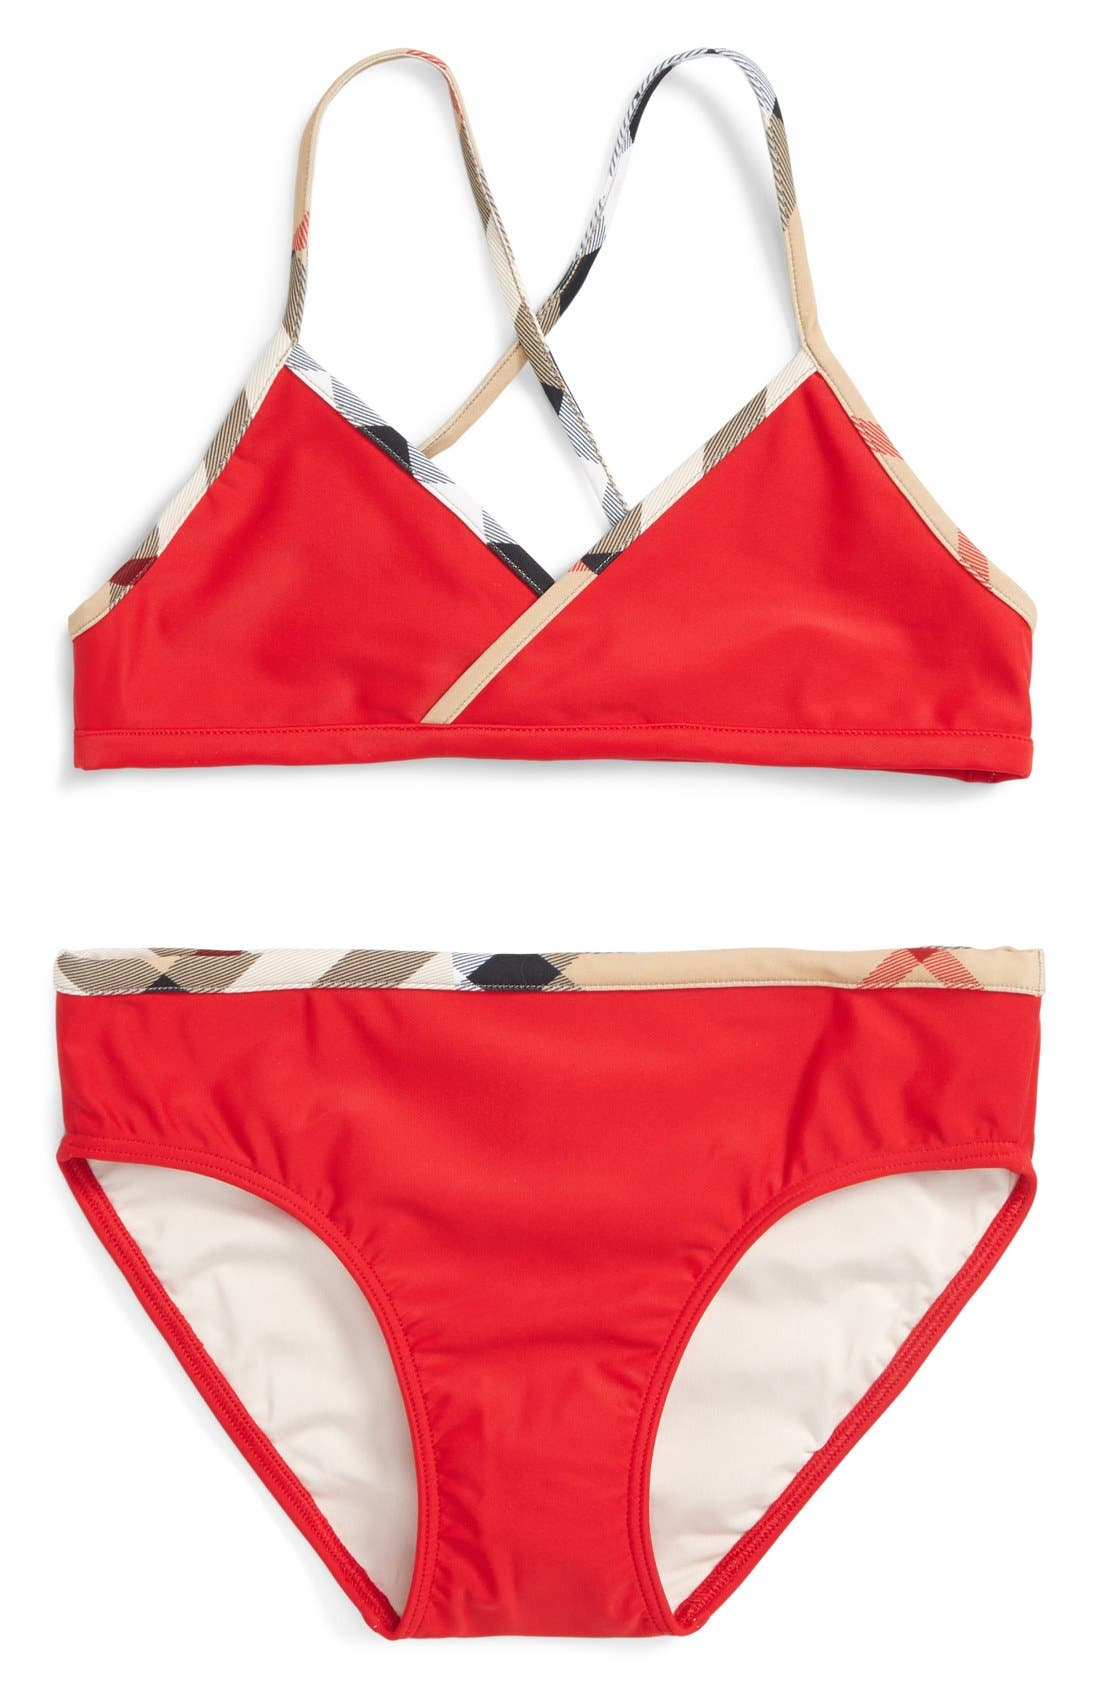 'Crosby' Two-Piece Swimsuit,                             Main thumbnail 1, color,                             613